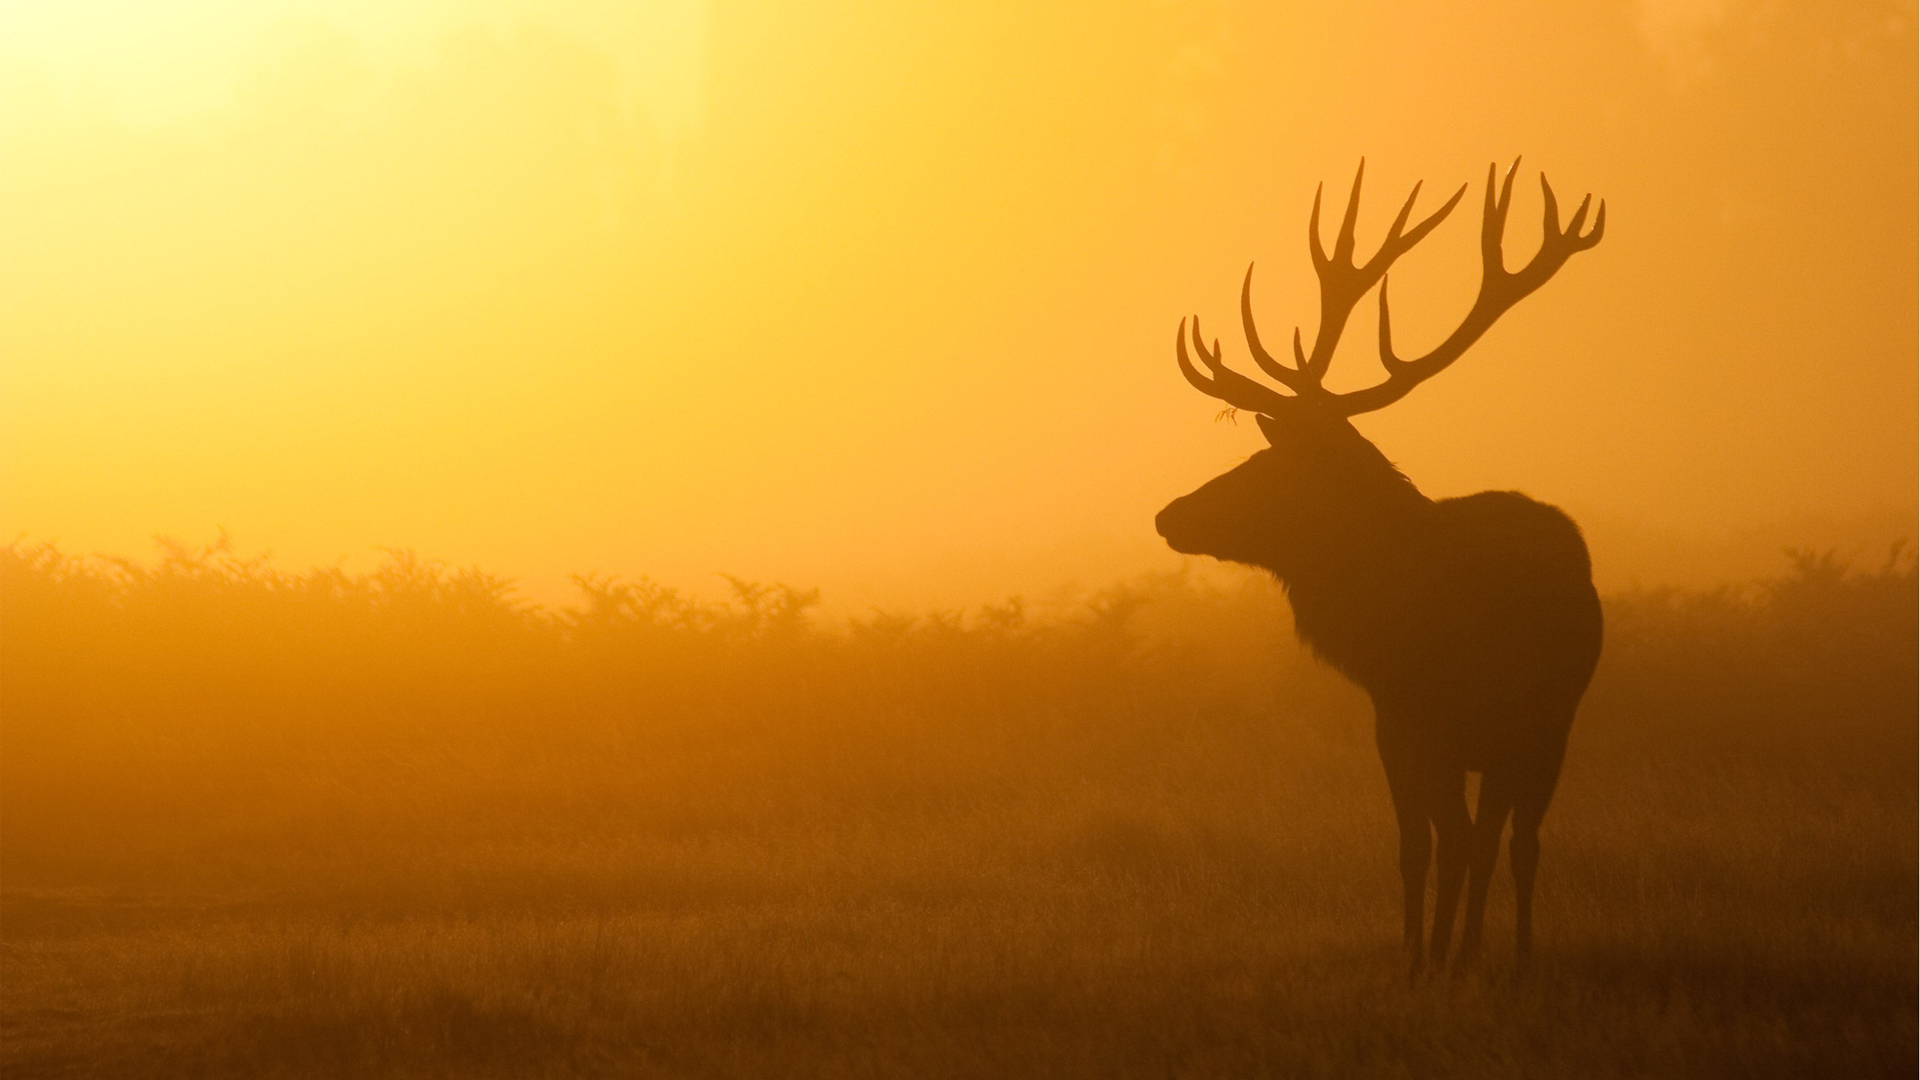 Silhouette of a deer in the fog at dawn